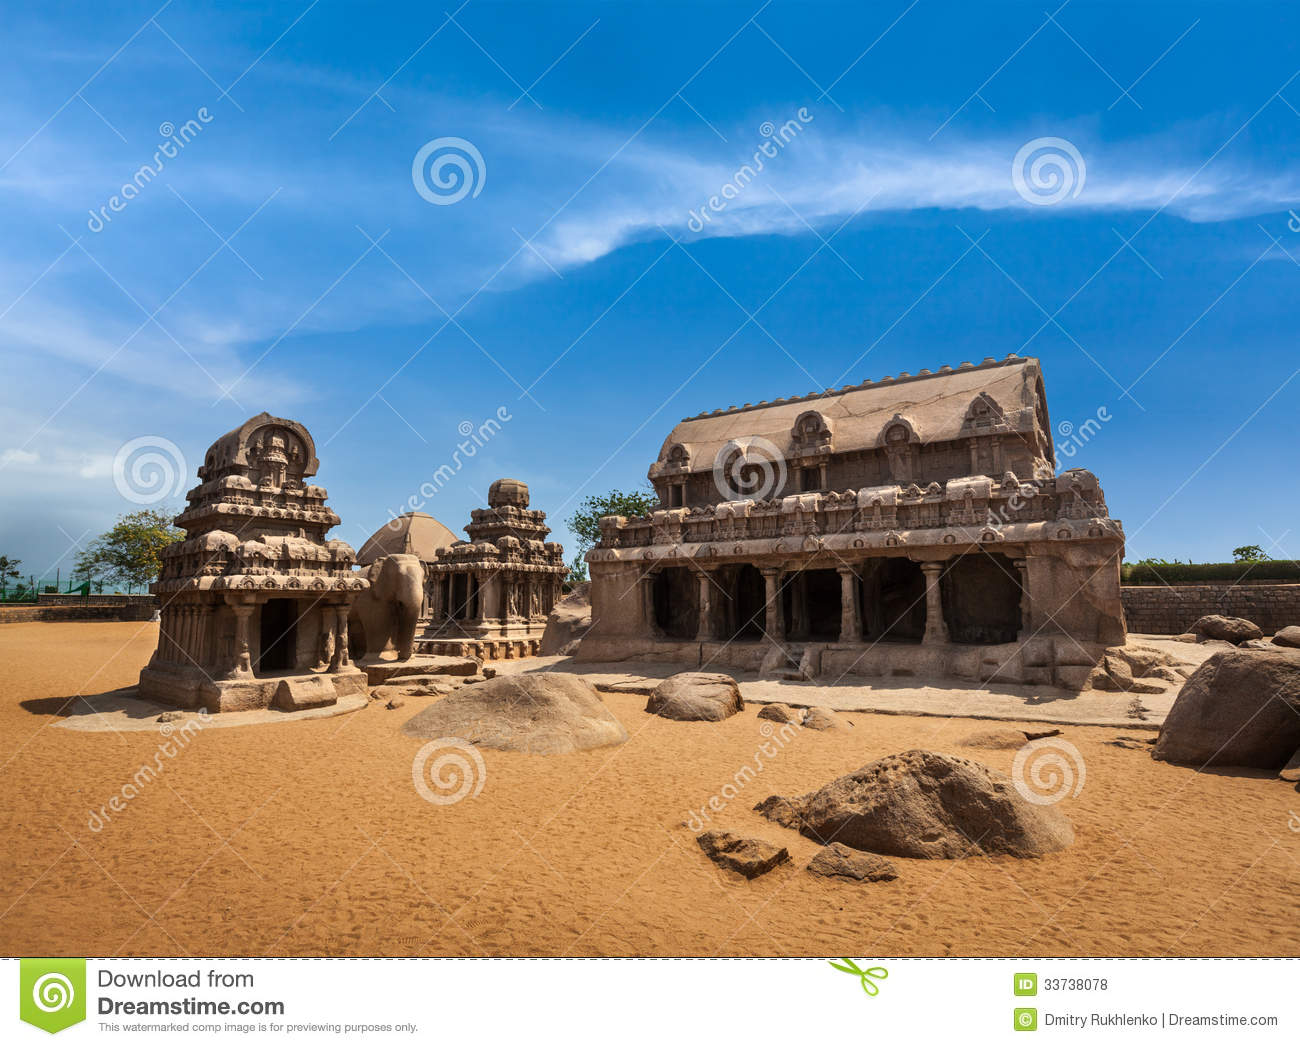 Cave and Rock-Cut Architecture Found in India